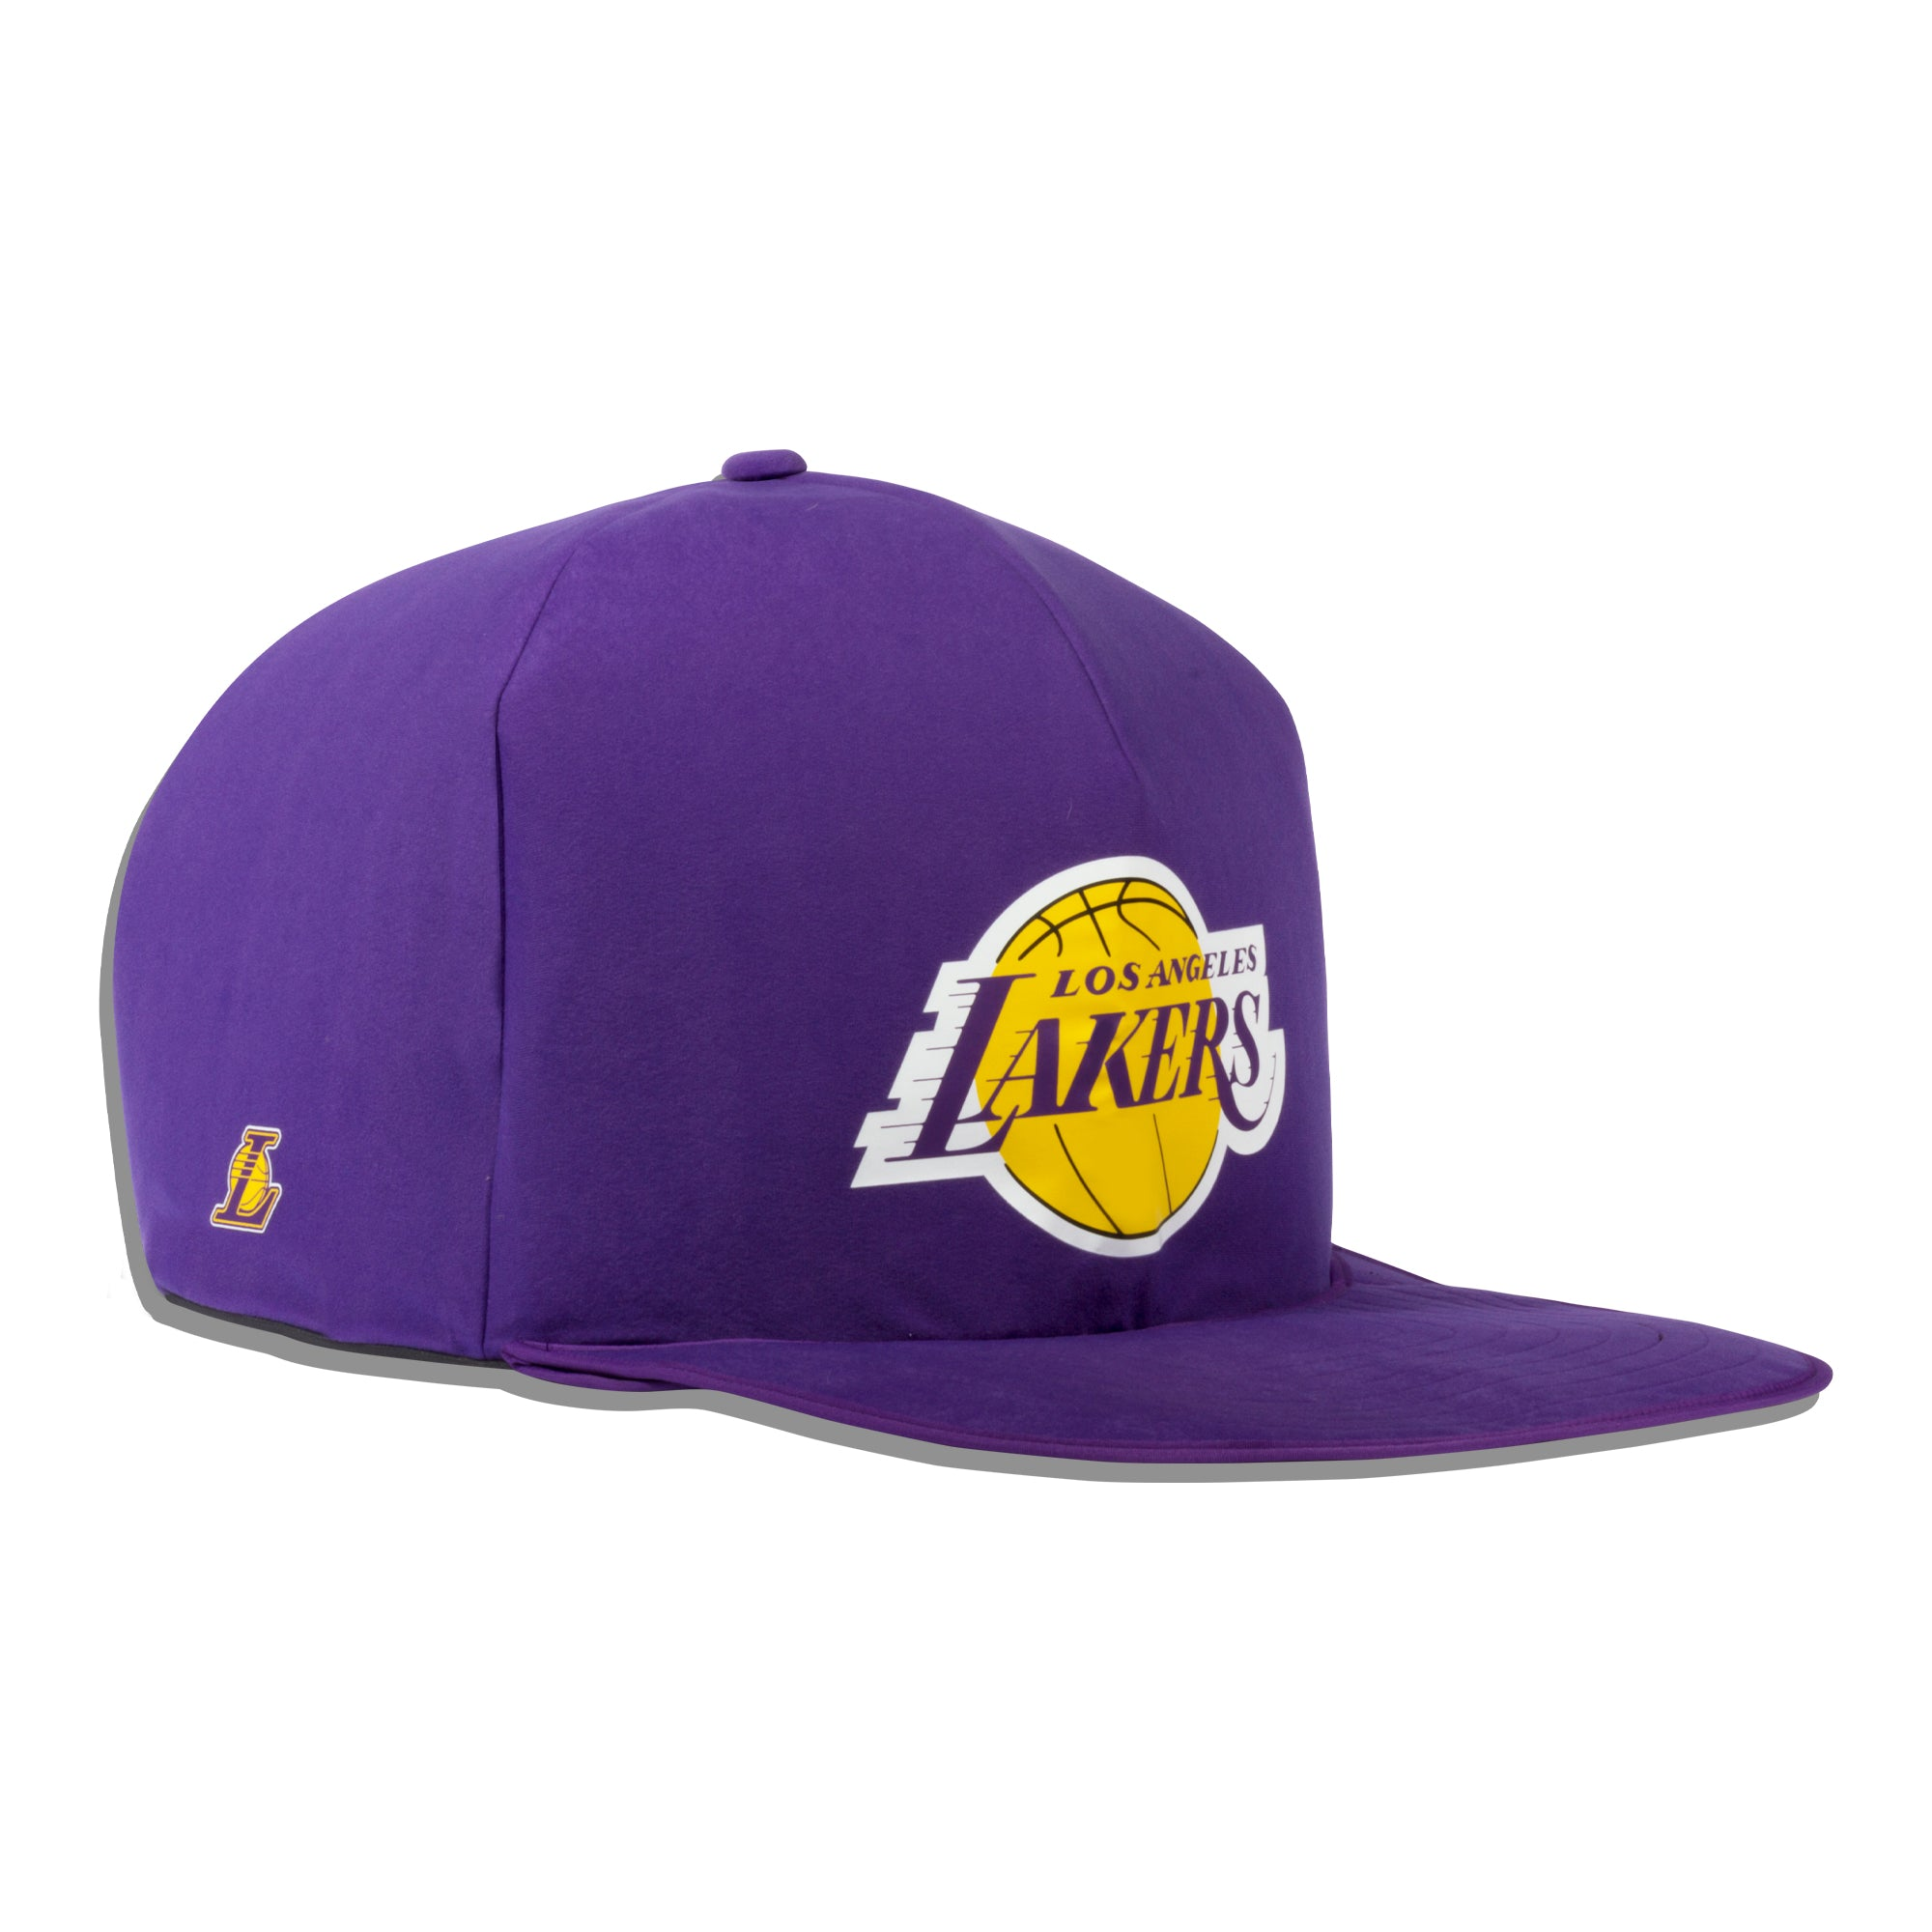 Nap Cap - Plush Edition Los Angeles Lakers